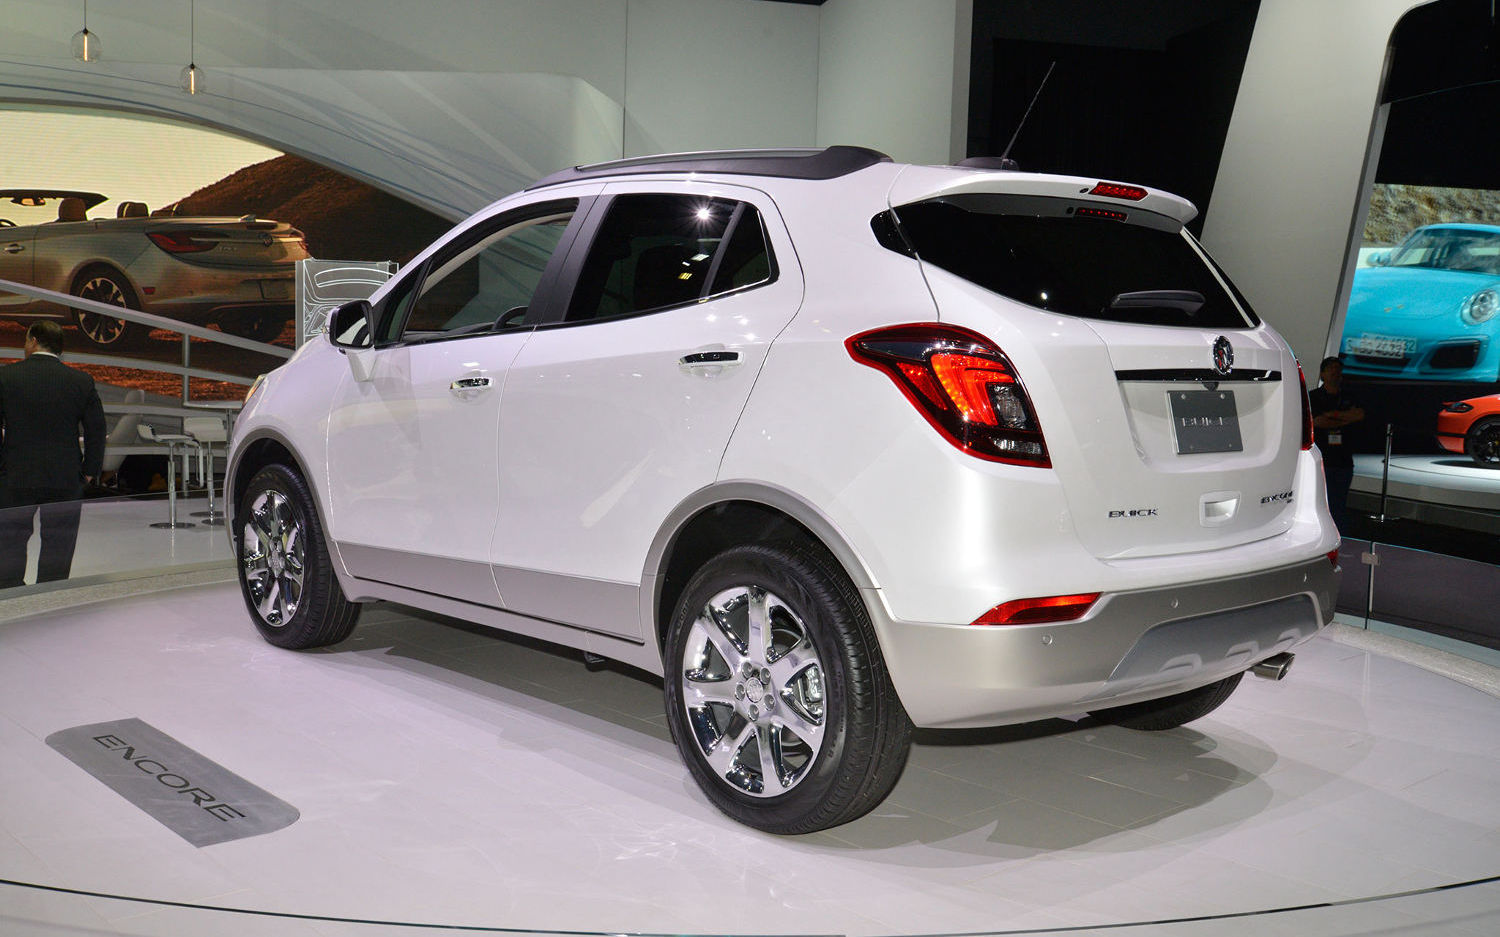 Honda crv or buick encore fiat world test drive for Buick encore vs honda hrv